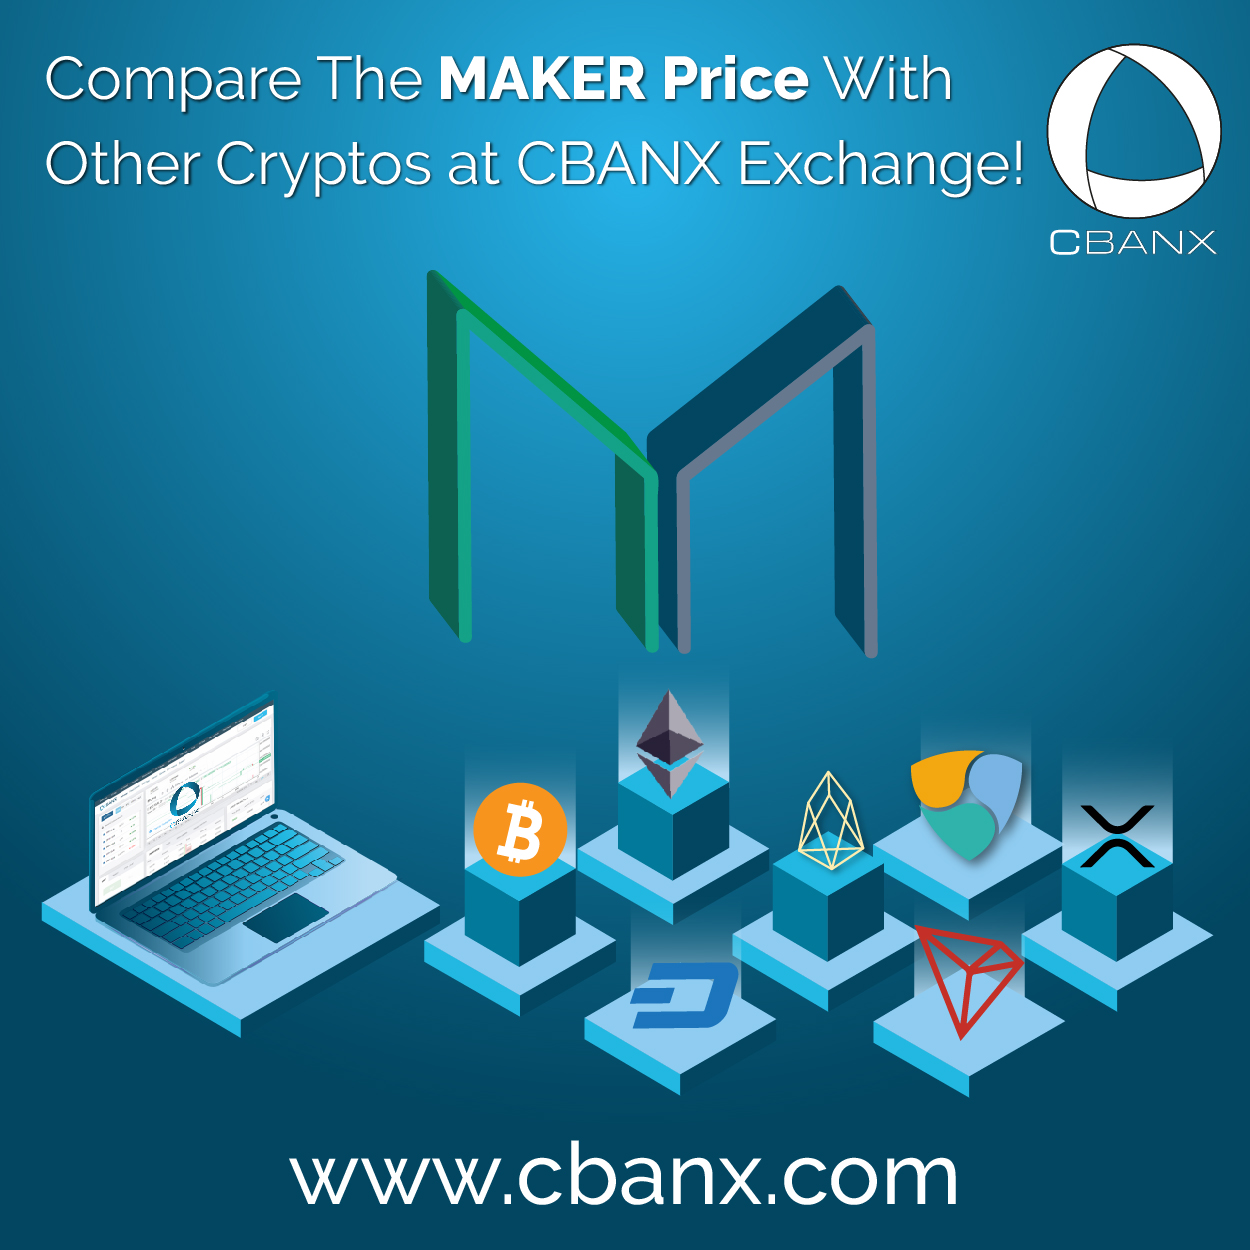 Compare The MAKER Price With Other Cryptos at CBANX Exchange!